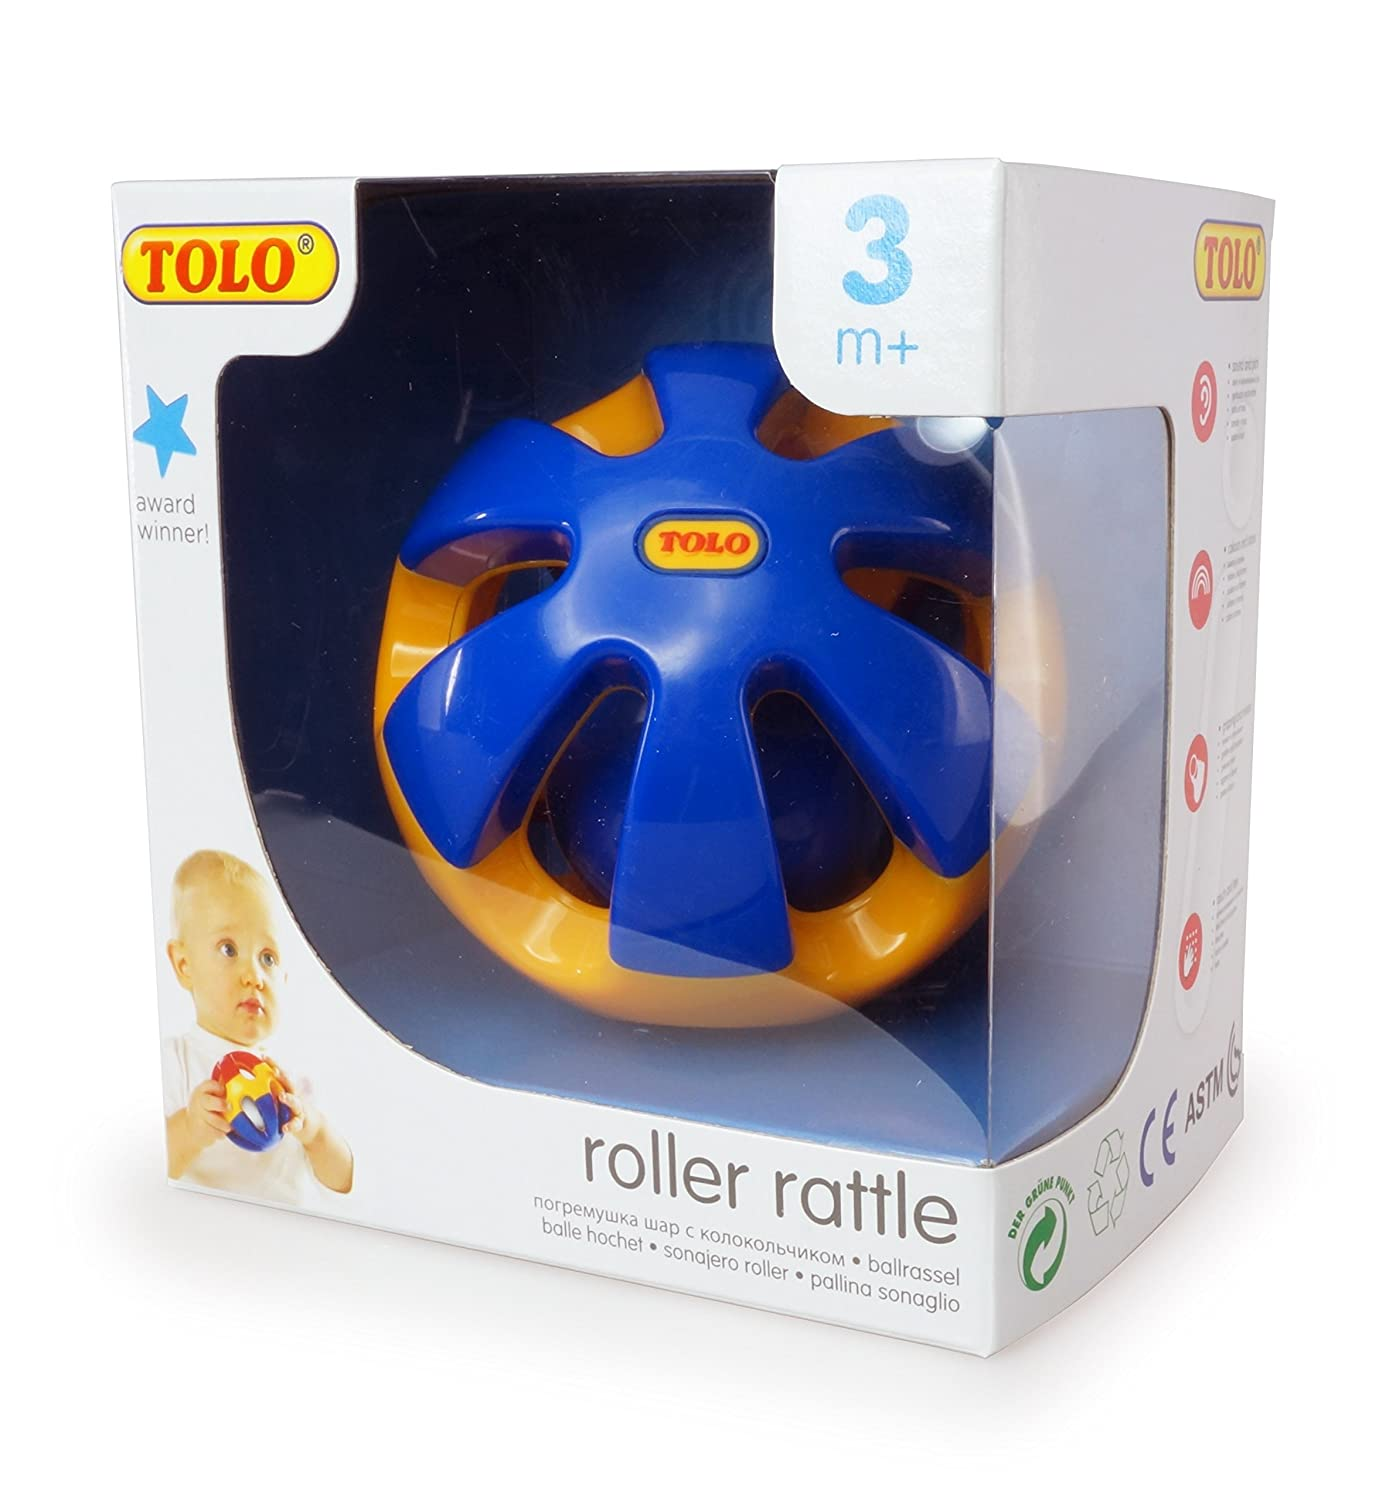 Tolo Roller Rattle Reeves Int/'l T89170 Activity Noise-Making Breyer